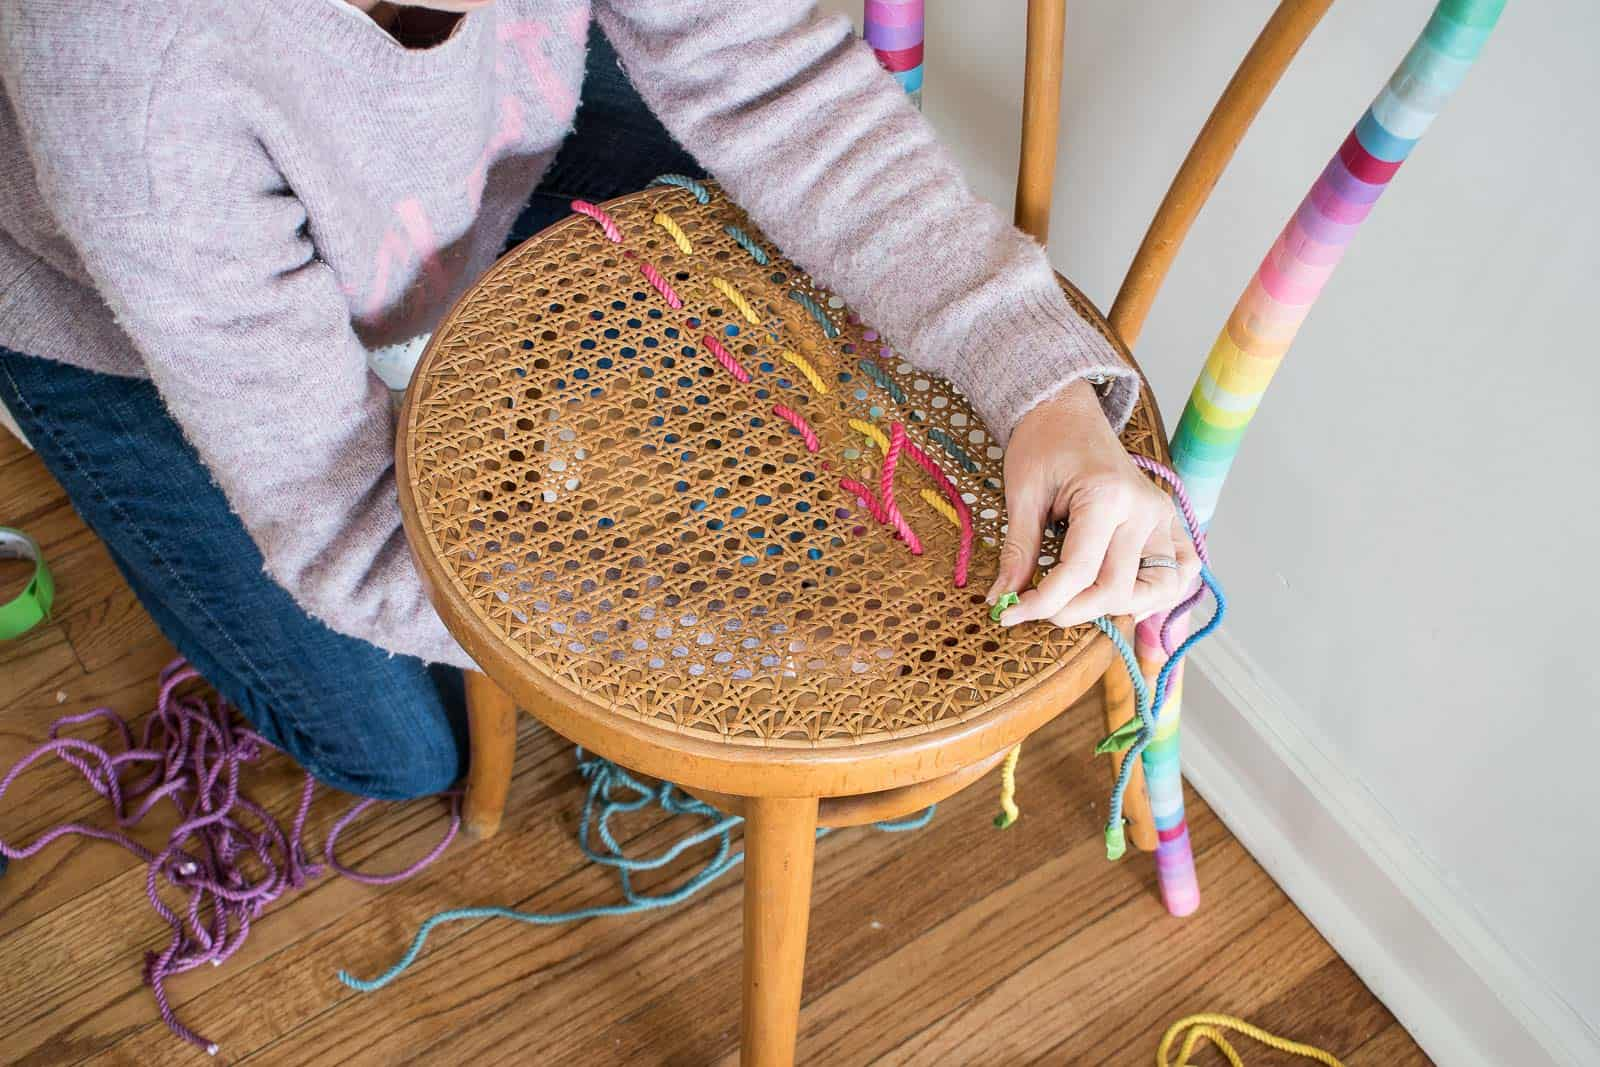 weaving rope through the cane seat